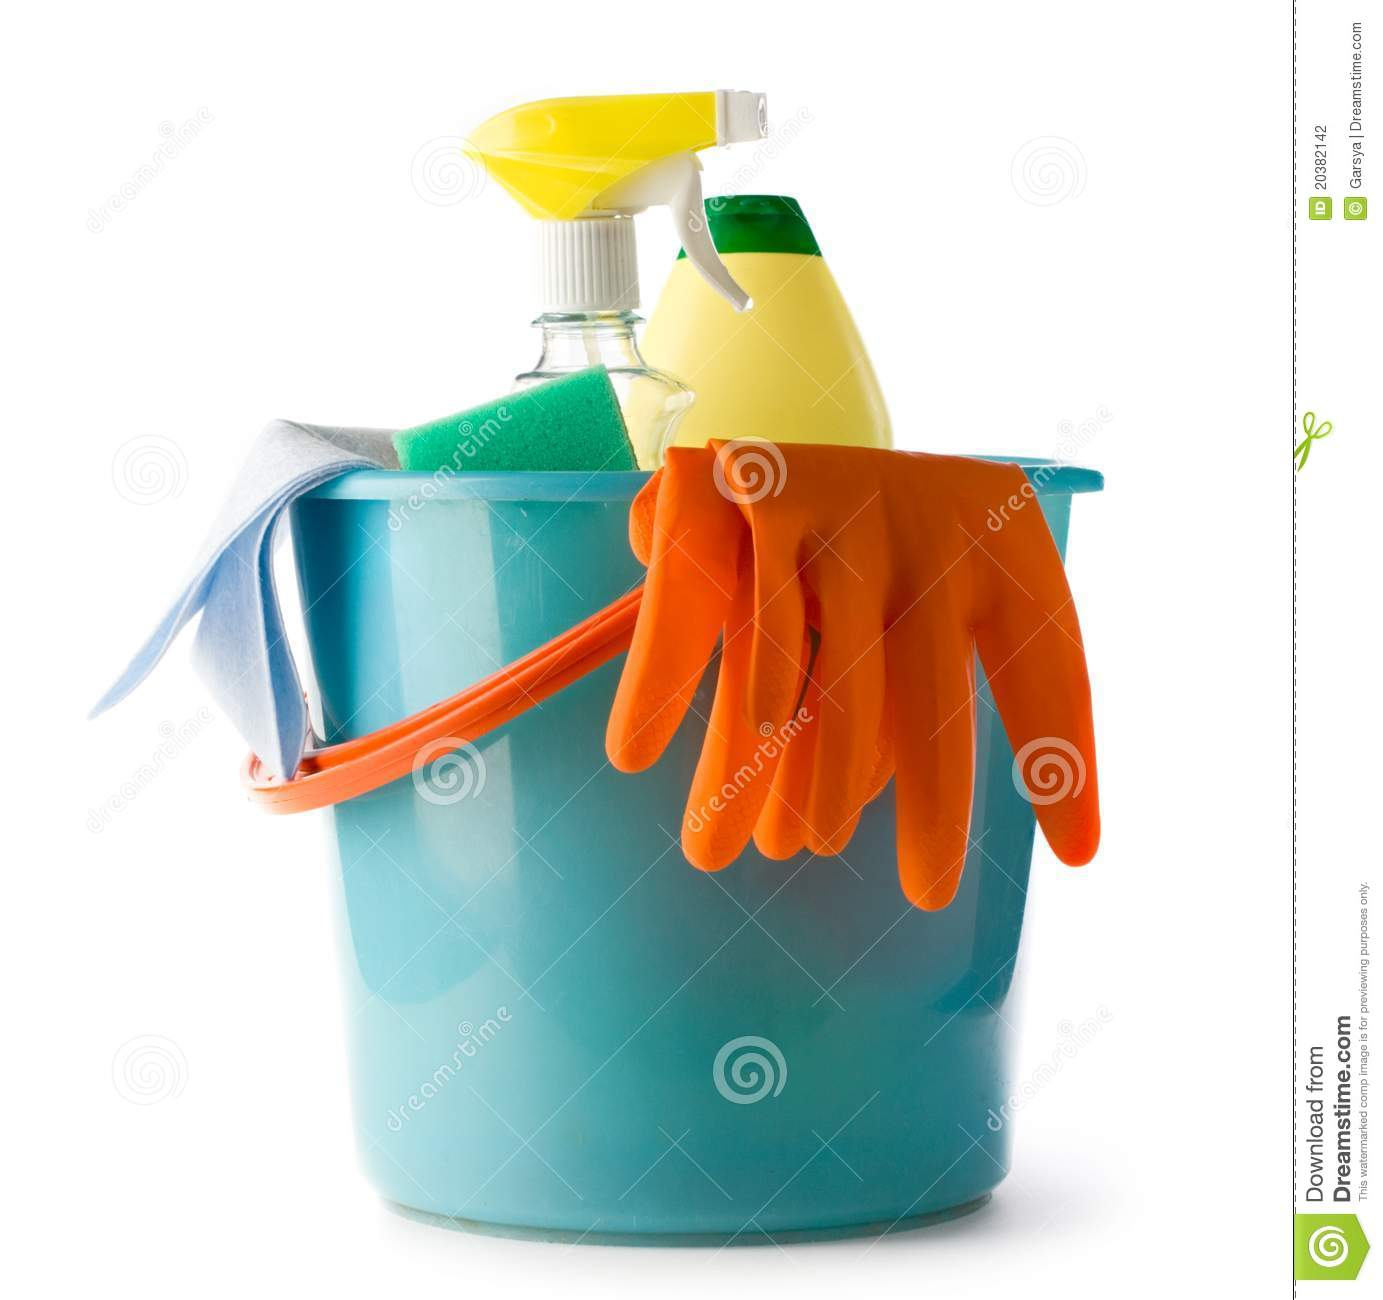 Plastic Bucket With Cleaning Supplies Stock Photo - Image of cleaning. fabric: 20382142